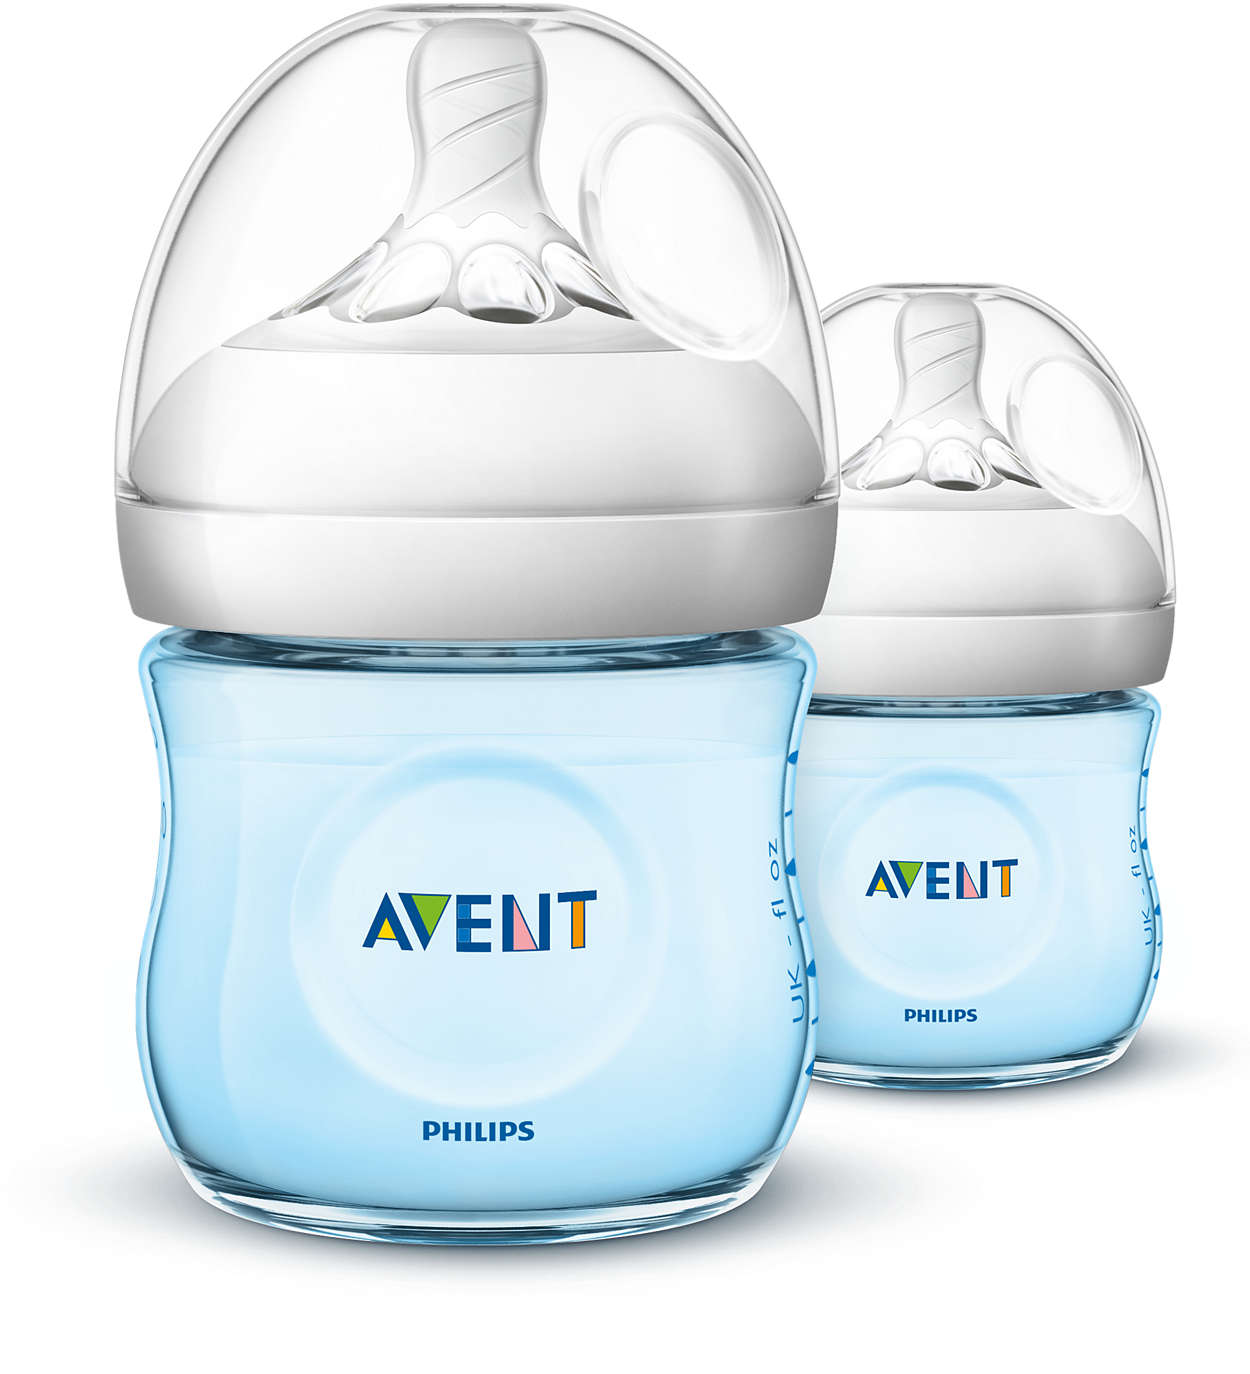 Natural Baby Bottle Scf692 23 Avent Buy 1 Get Free Mam Anti Colic Pink The Most Way To Feed